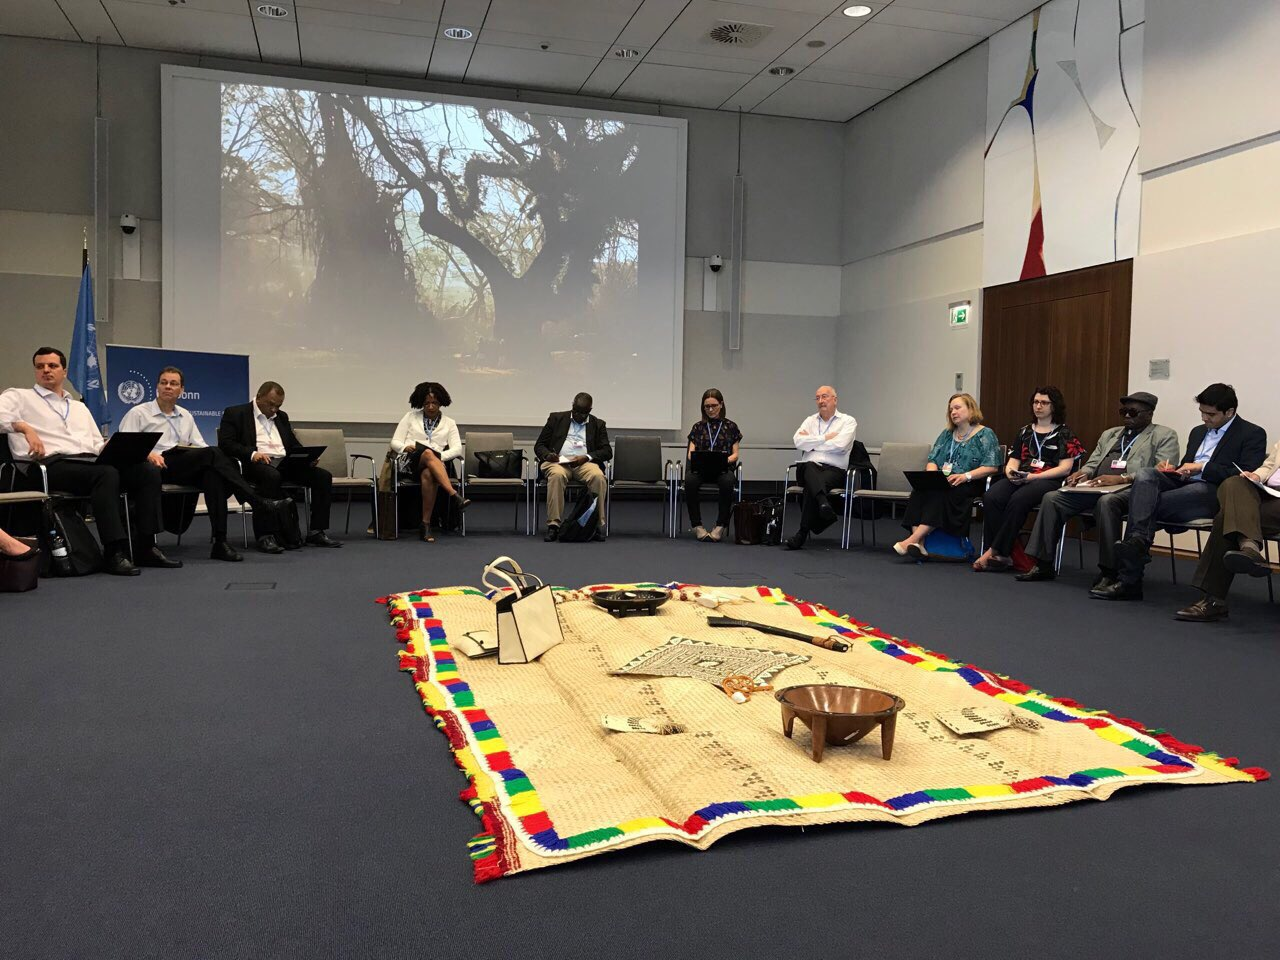 Talanoa Dialogue at the 2018 Climate Change Conference in Bonn, Germany